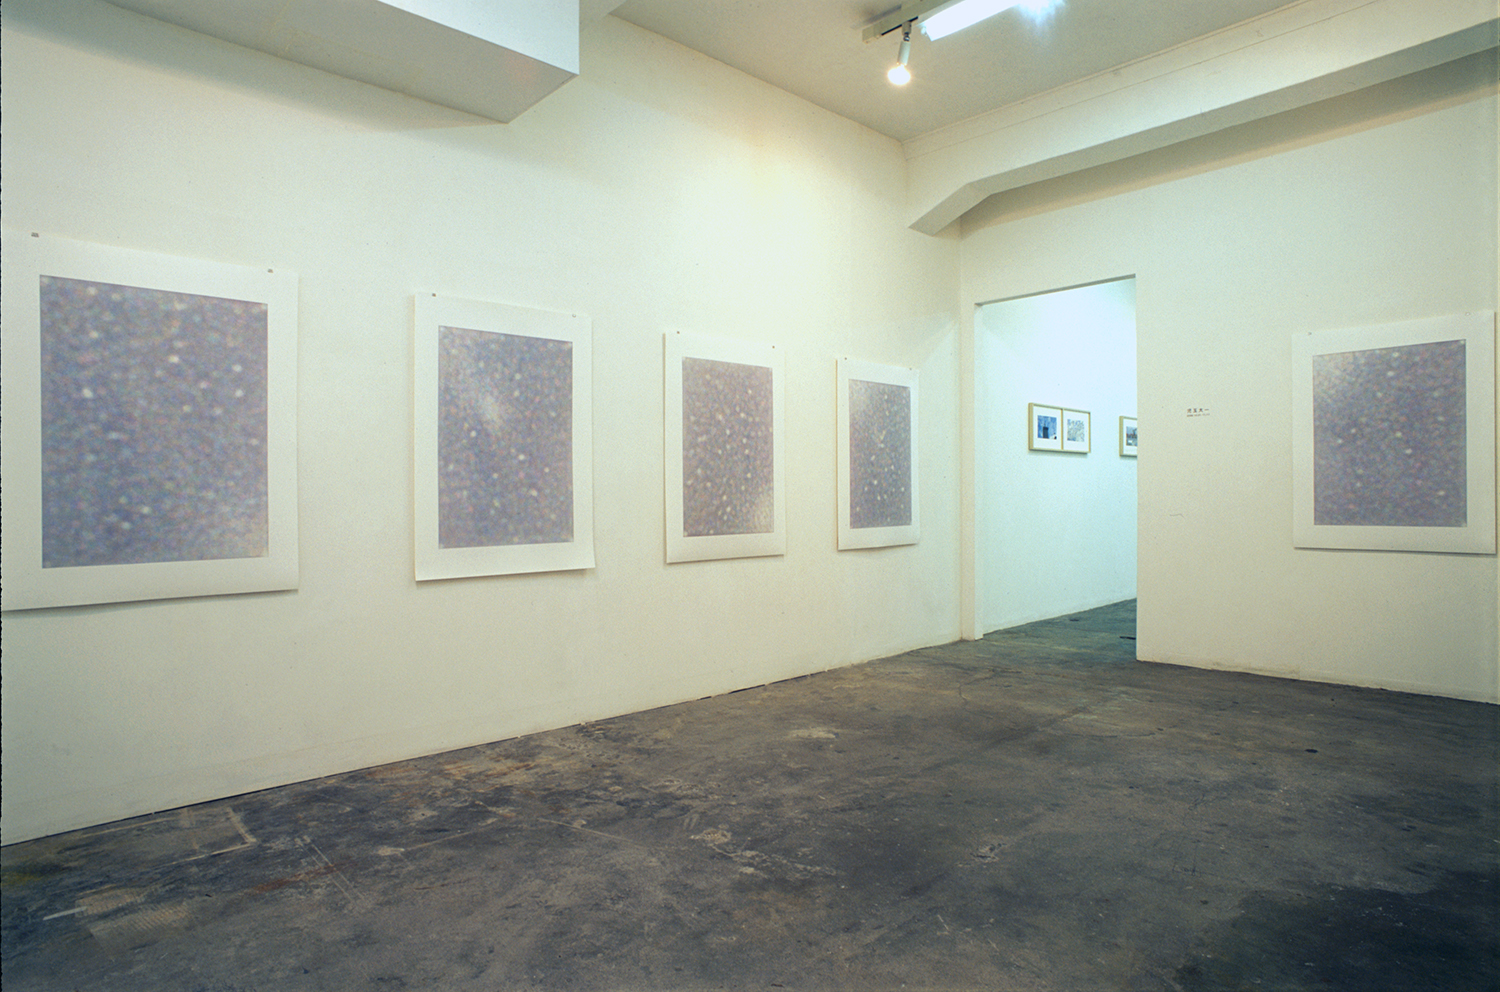 Installation view: Accumulation series|Acrylic on YUPO paper|image: 860 x 600mm, paper: 1094 x 788 mm|2006 each